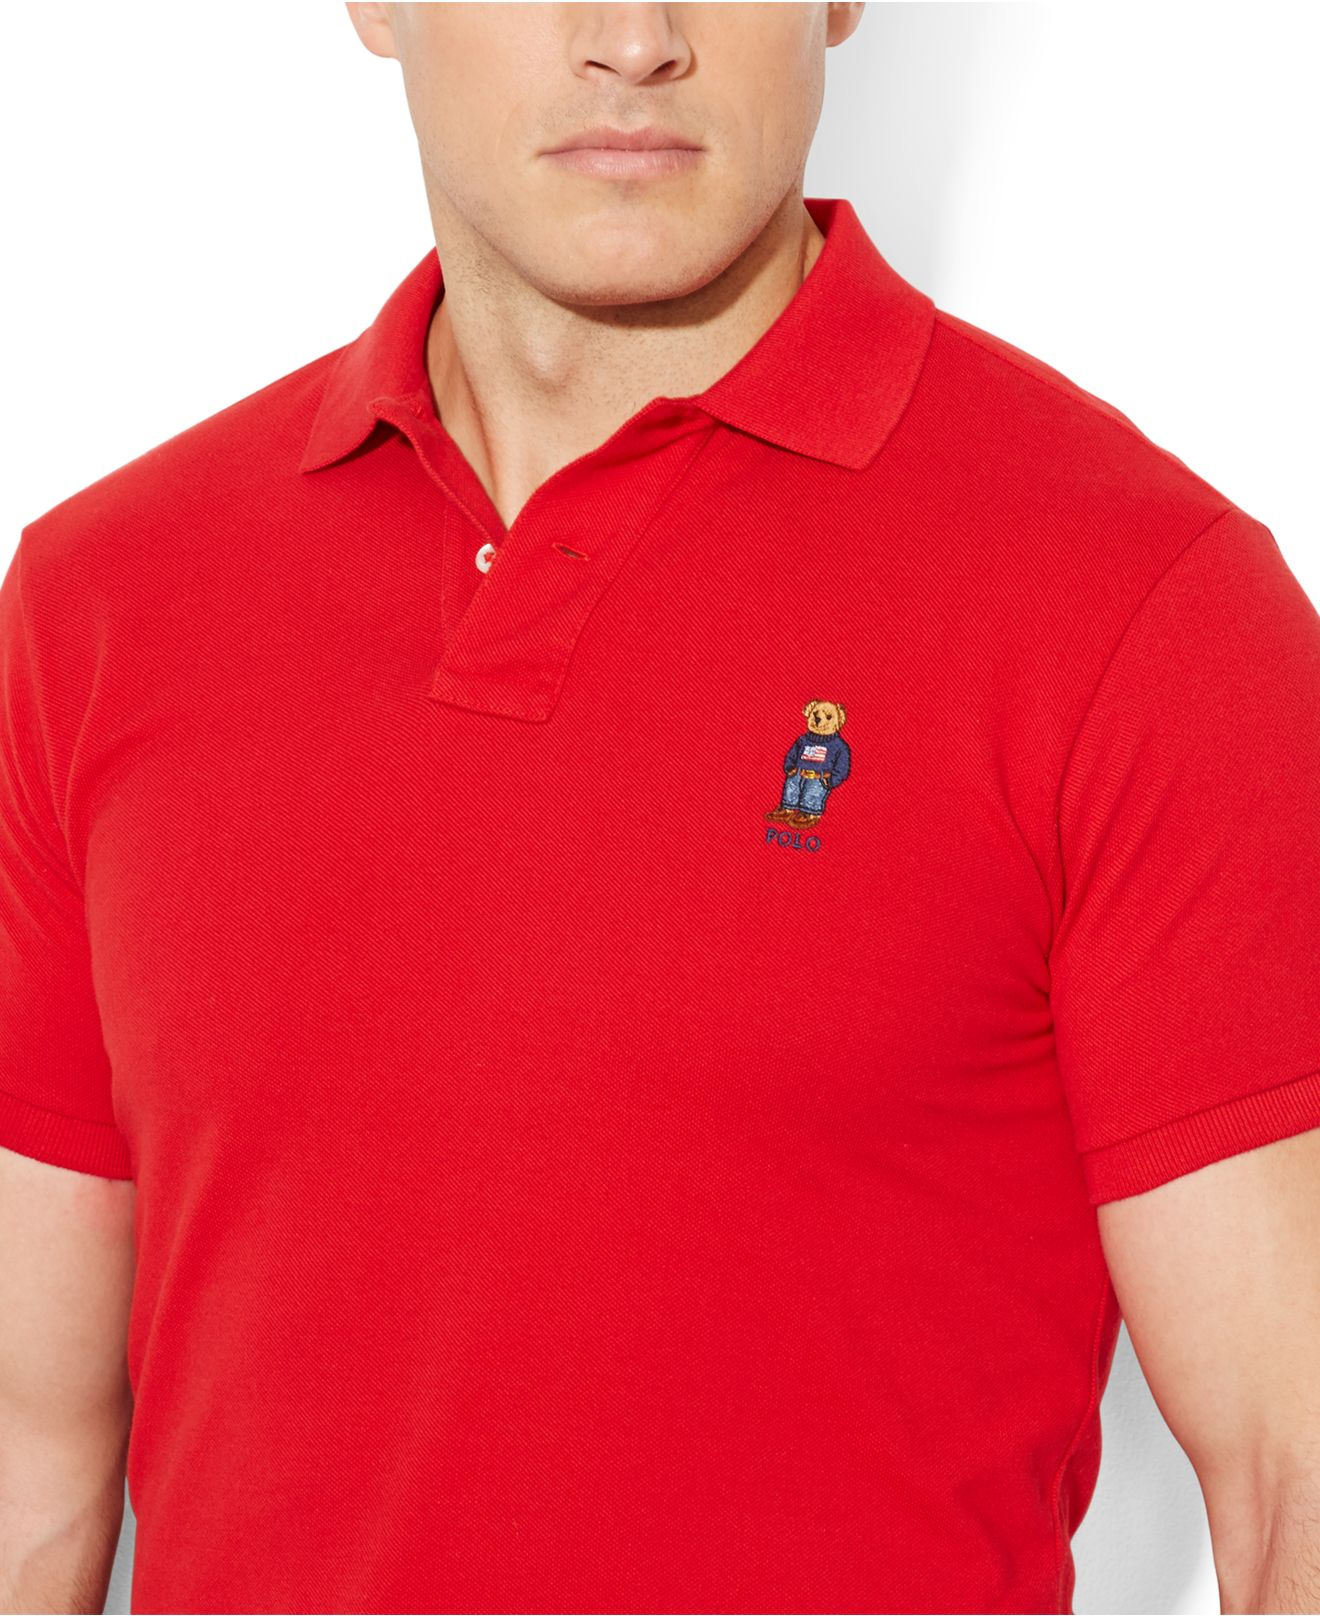 ralph lauren brand analysis and sourcing Ralph lauren (nyse:rl) has been plagued with declining revenues and loss of  brand appeal in recent years as a consequence, the.